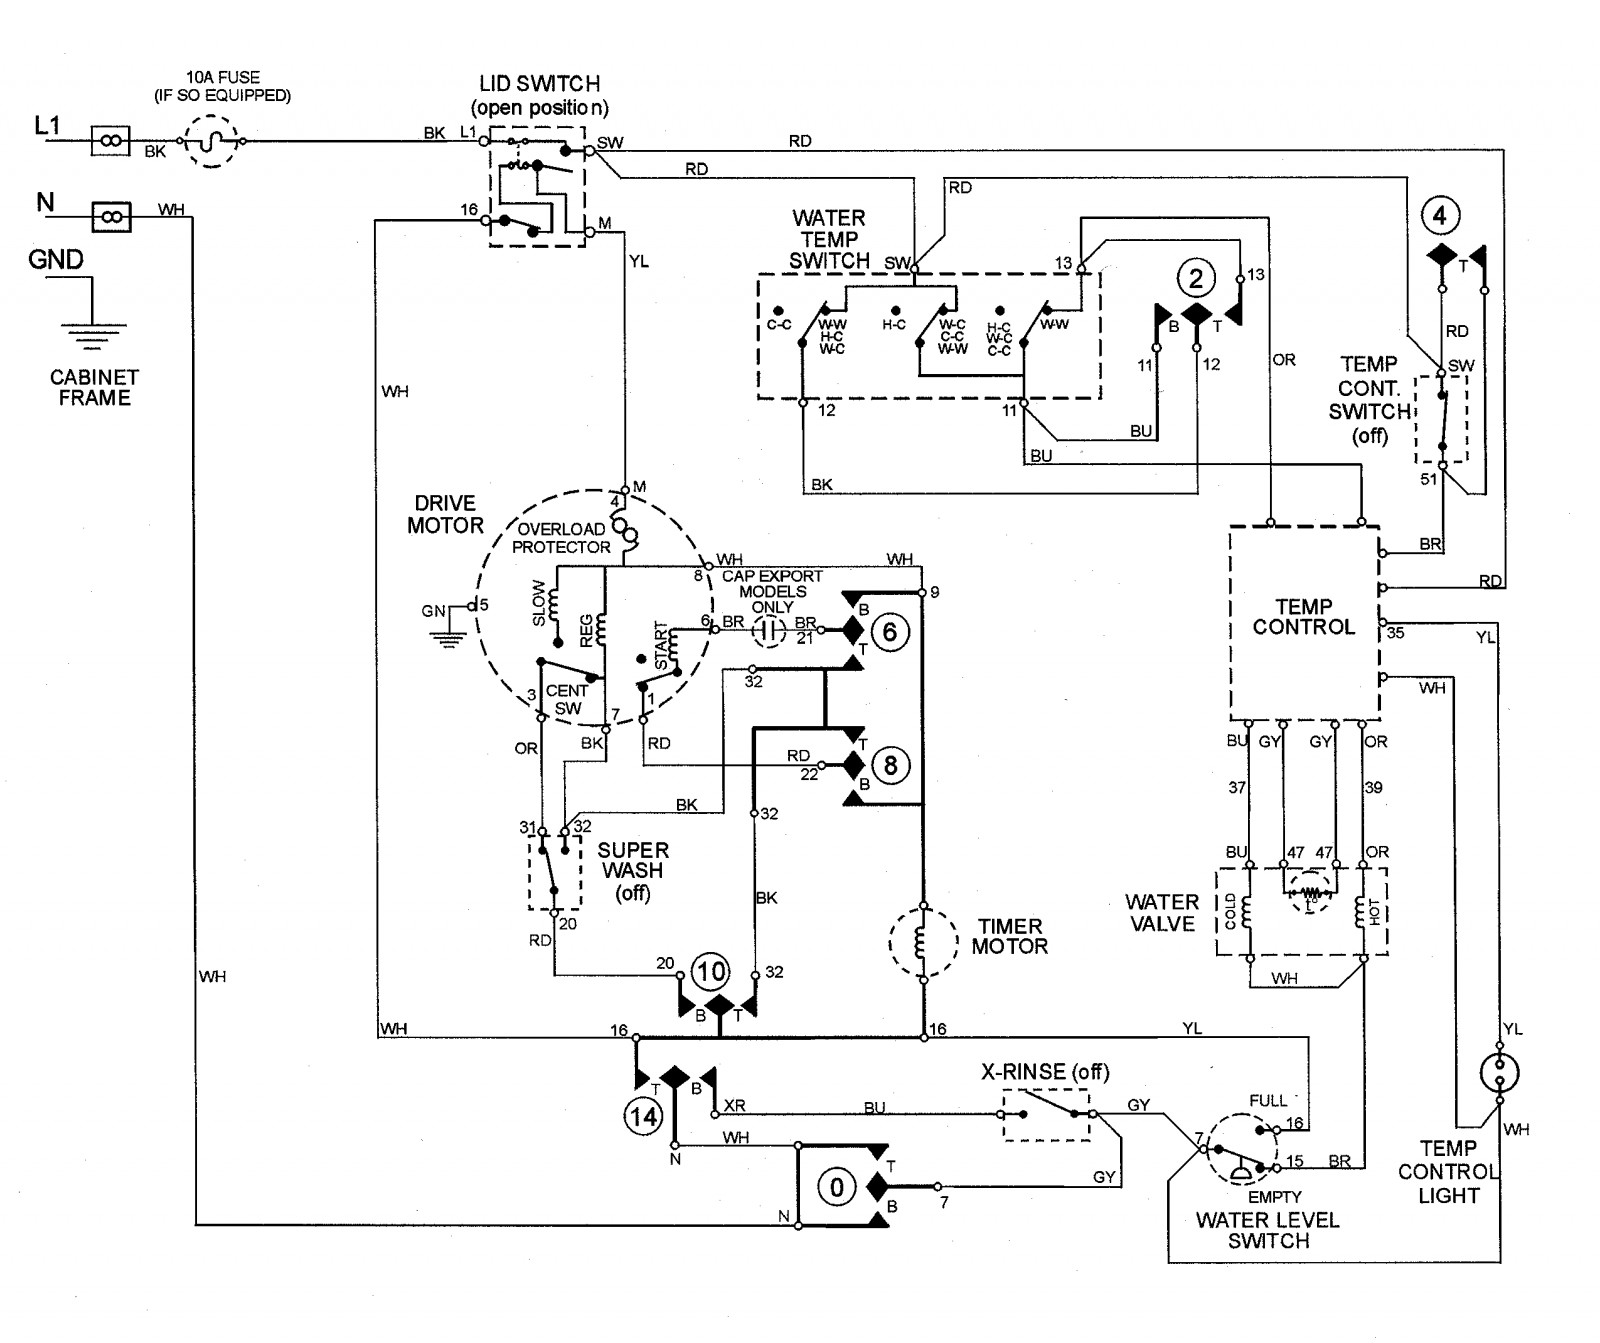 Ge Washer Motor Wiring Diagram Capacitor Start Schematic Electric Motors Diagrams General Induction Of